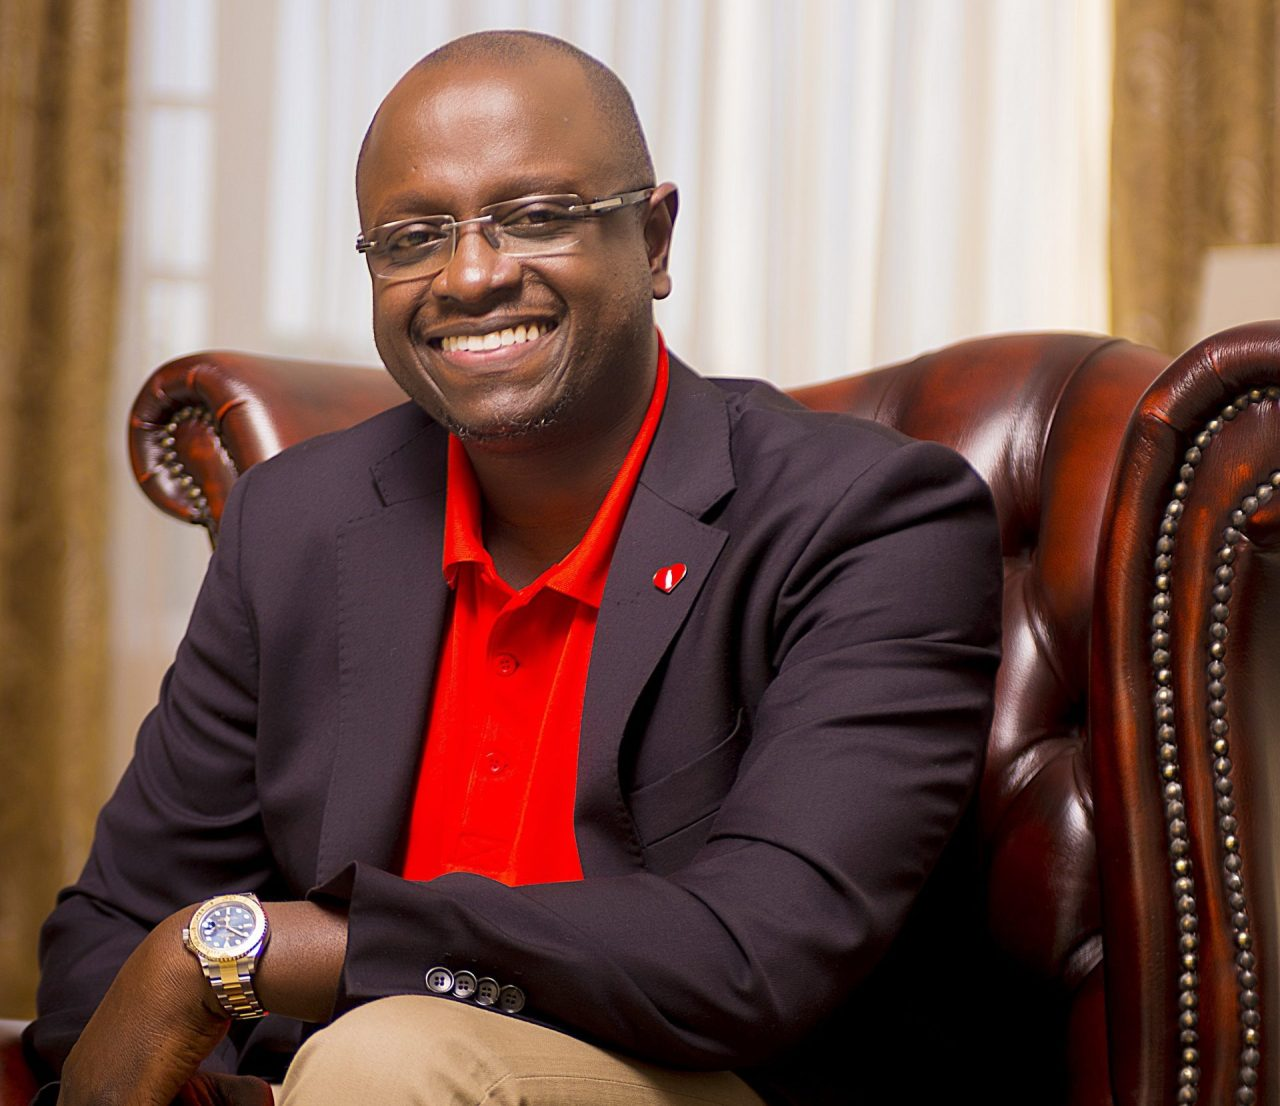 Twiga Foods Co Founder Peter Njonjo is leading innovation in food distribution across the continent